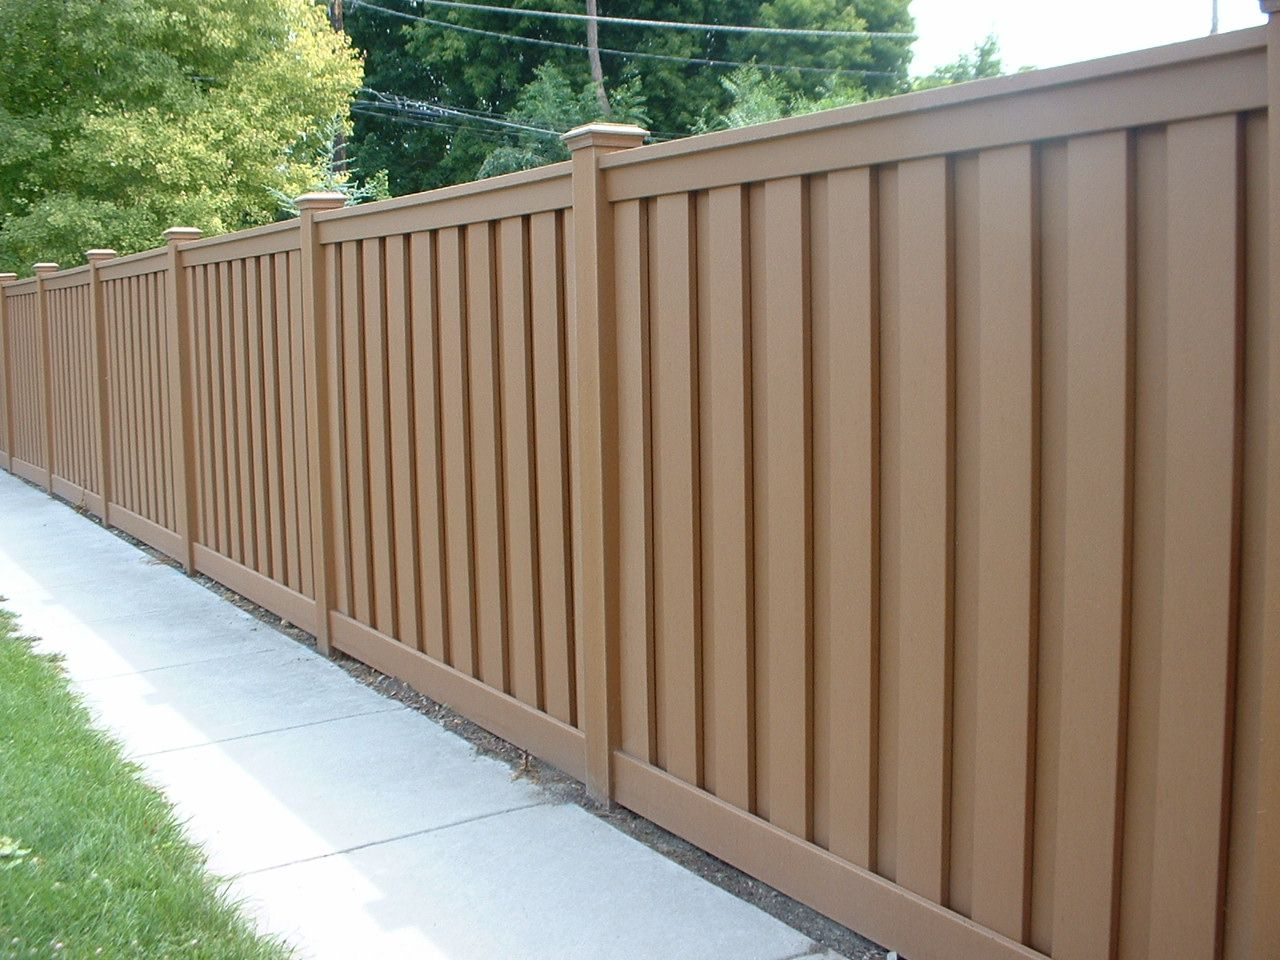 Goedkope Tuinafscheiding Wpc Cheap Fence Panels Wood Plastic Composite Outdoor